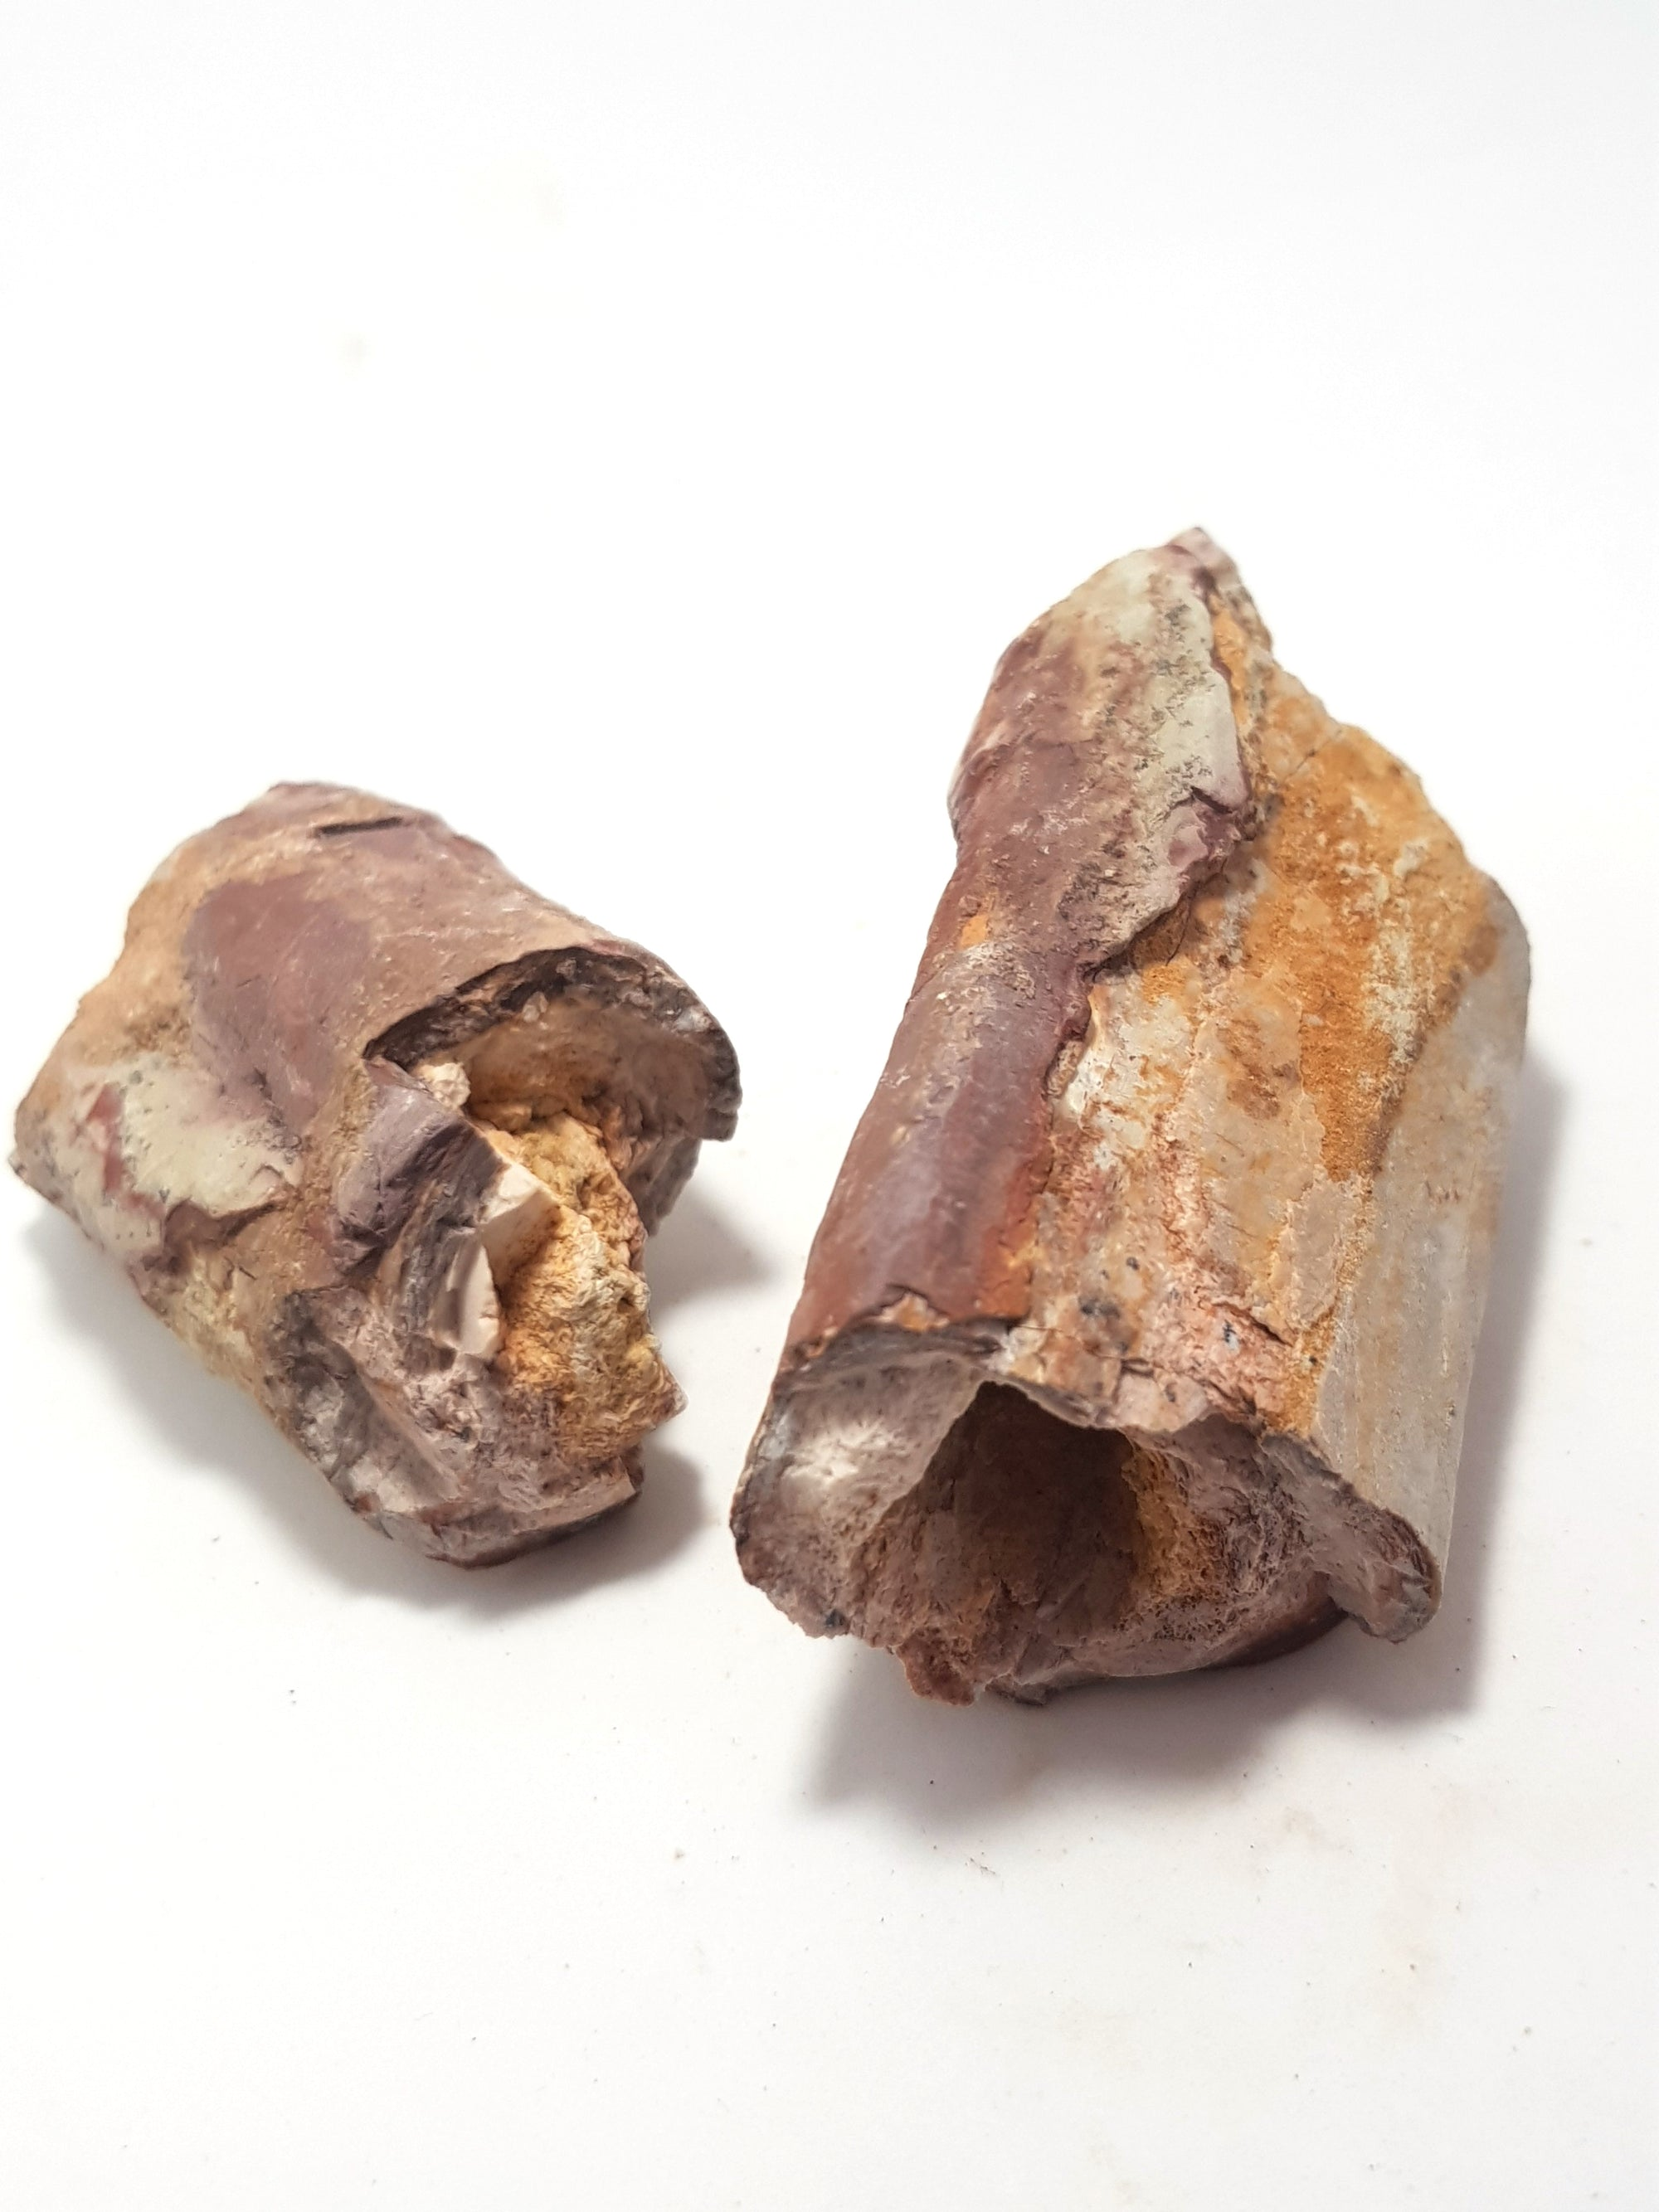 2 pieces of therapod dinosaur rib in cross section. the bone is dark brown. The interior of the bones is completely hollow.